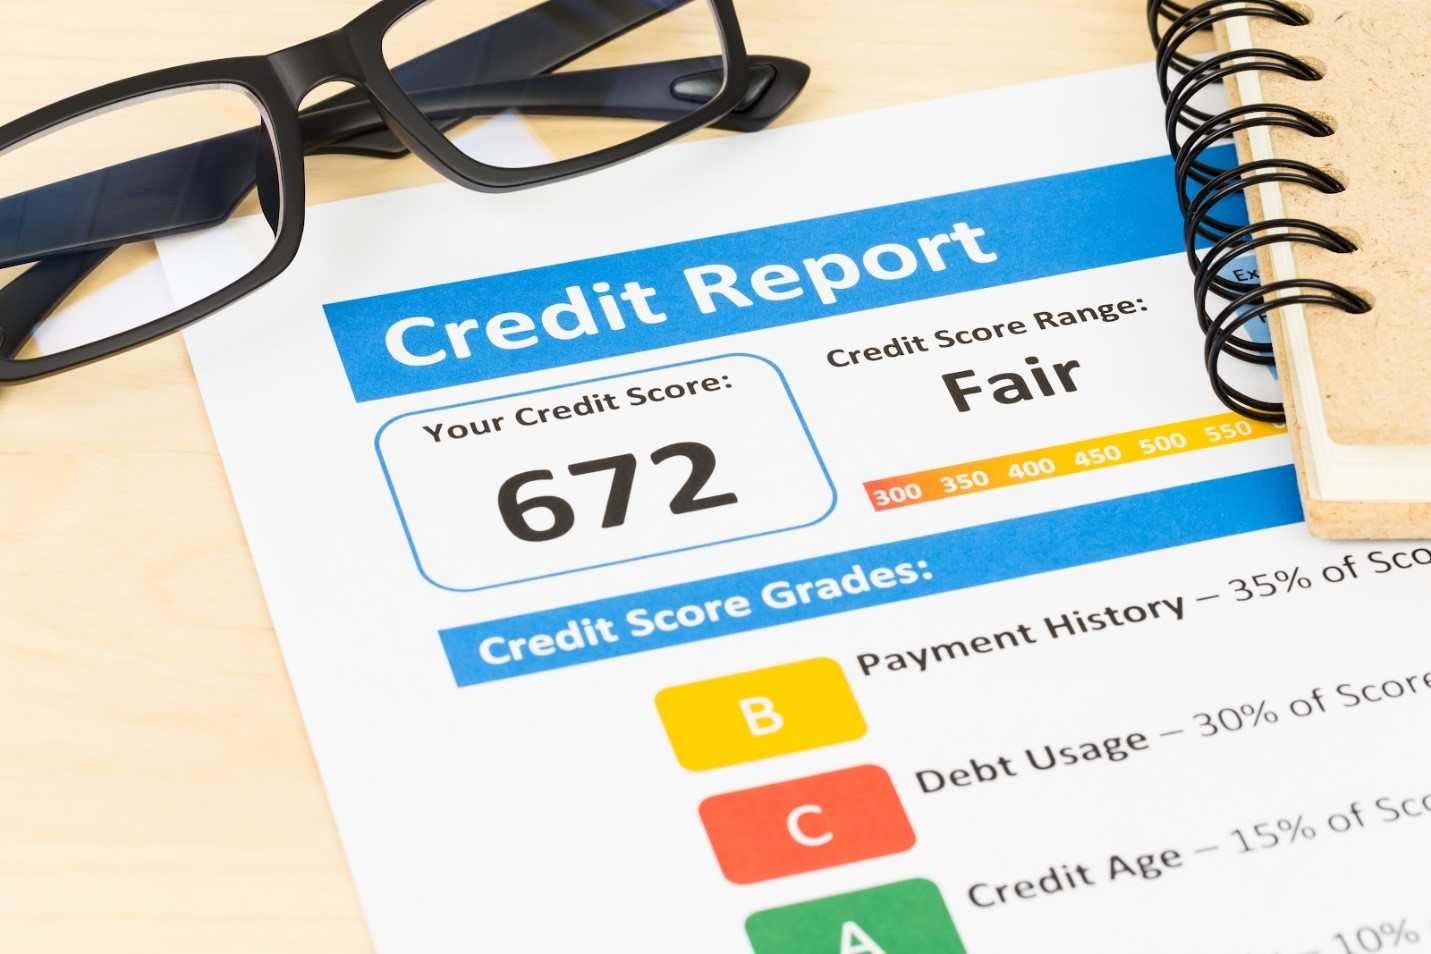 What is the Meaning of Fair Credit